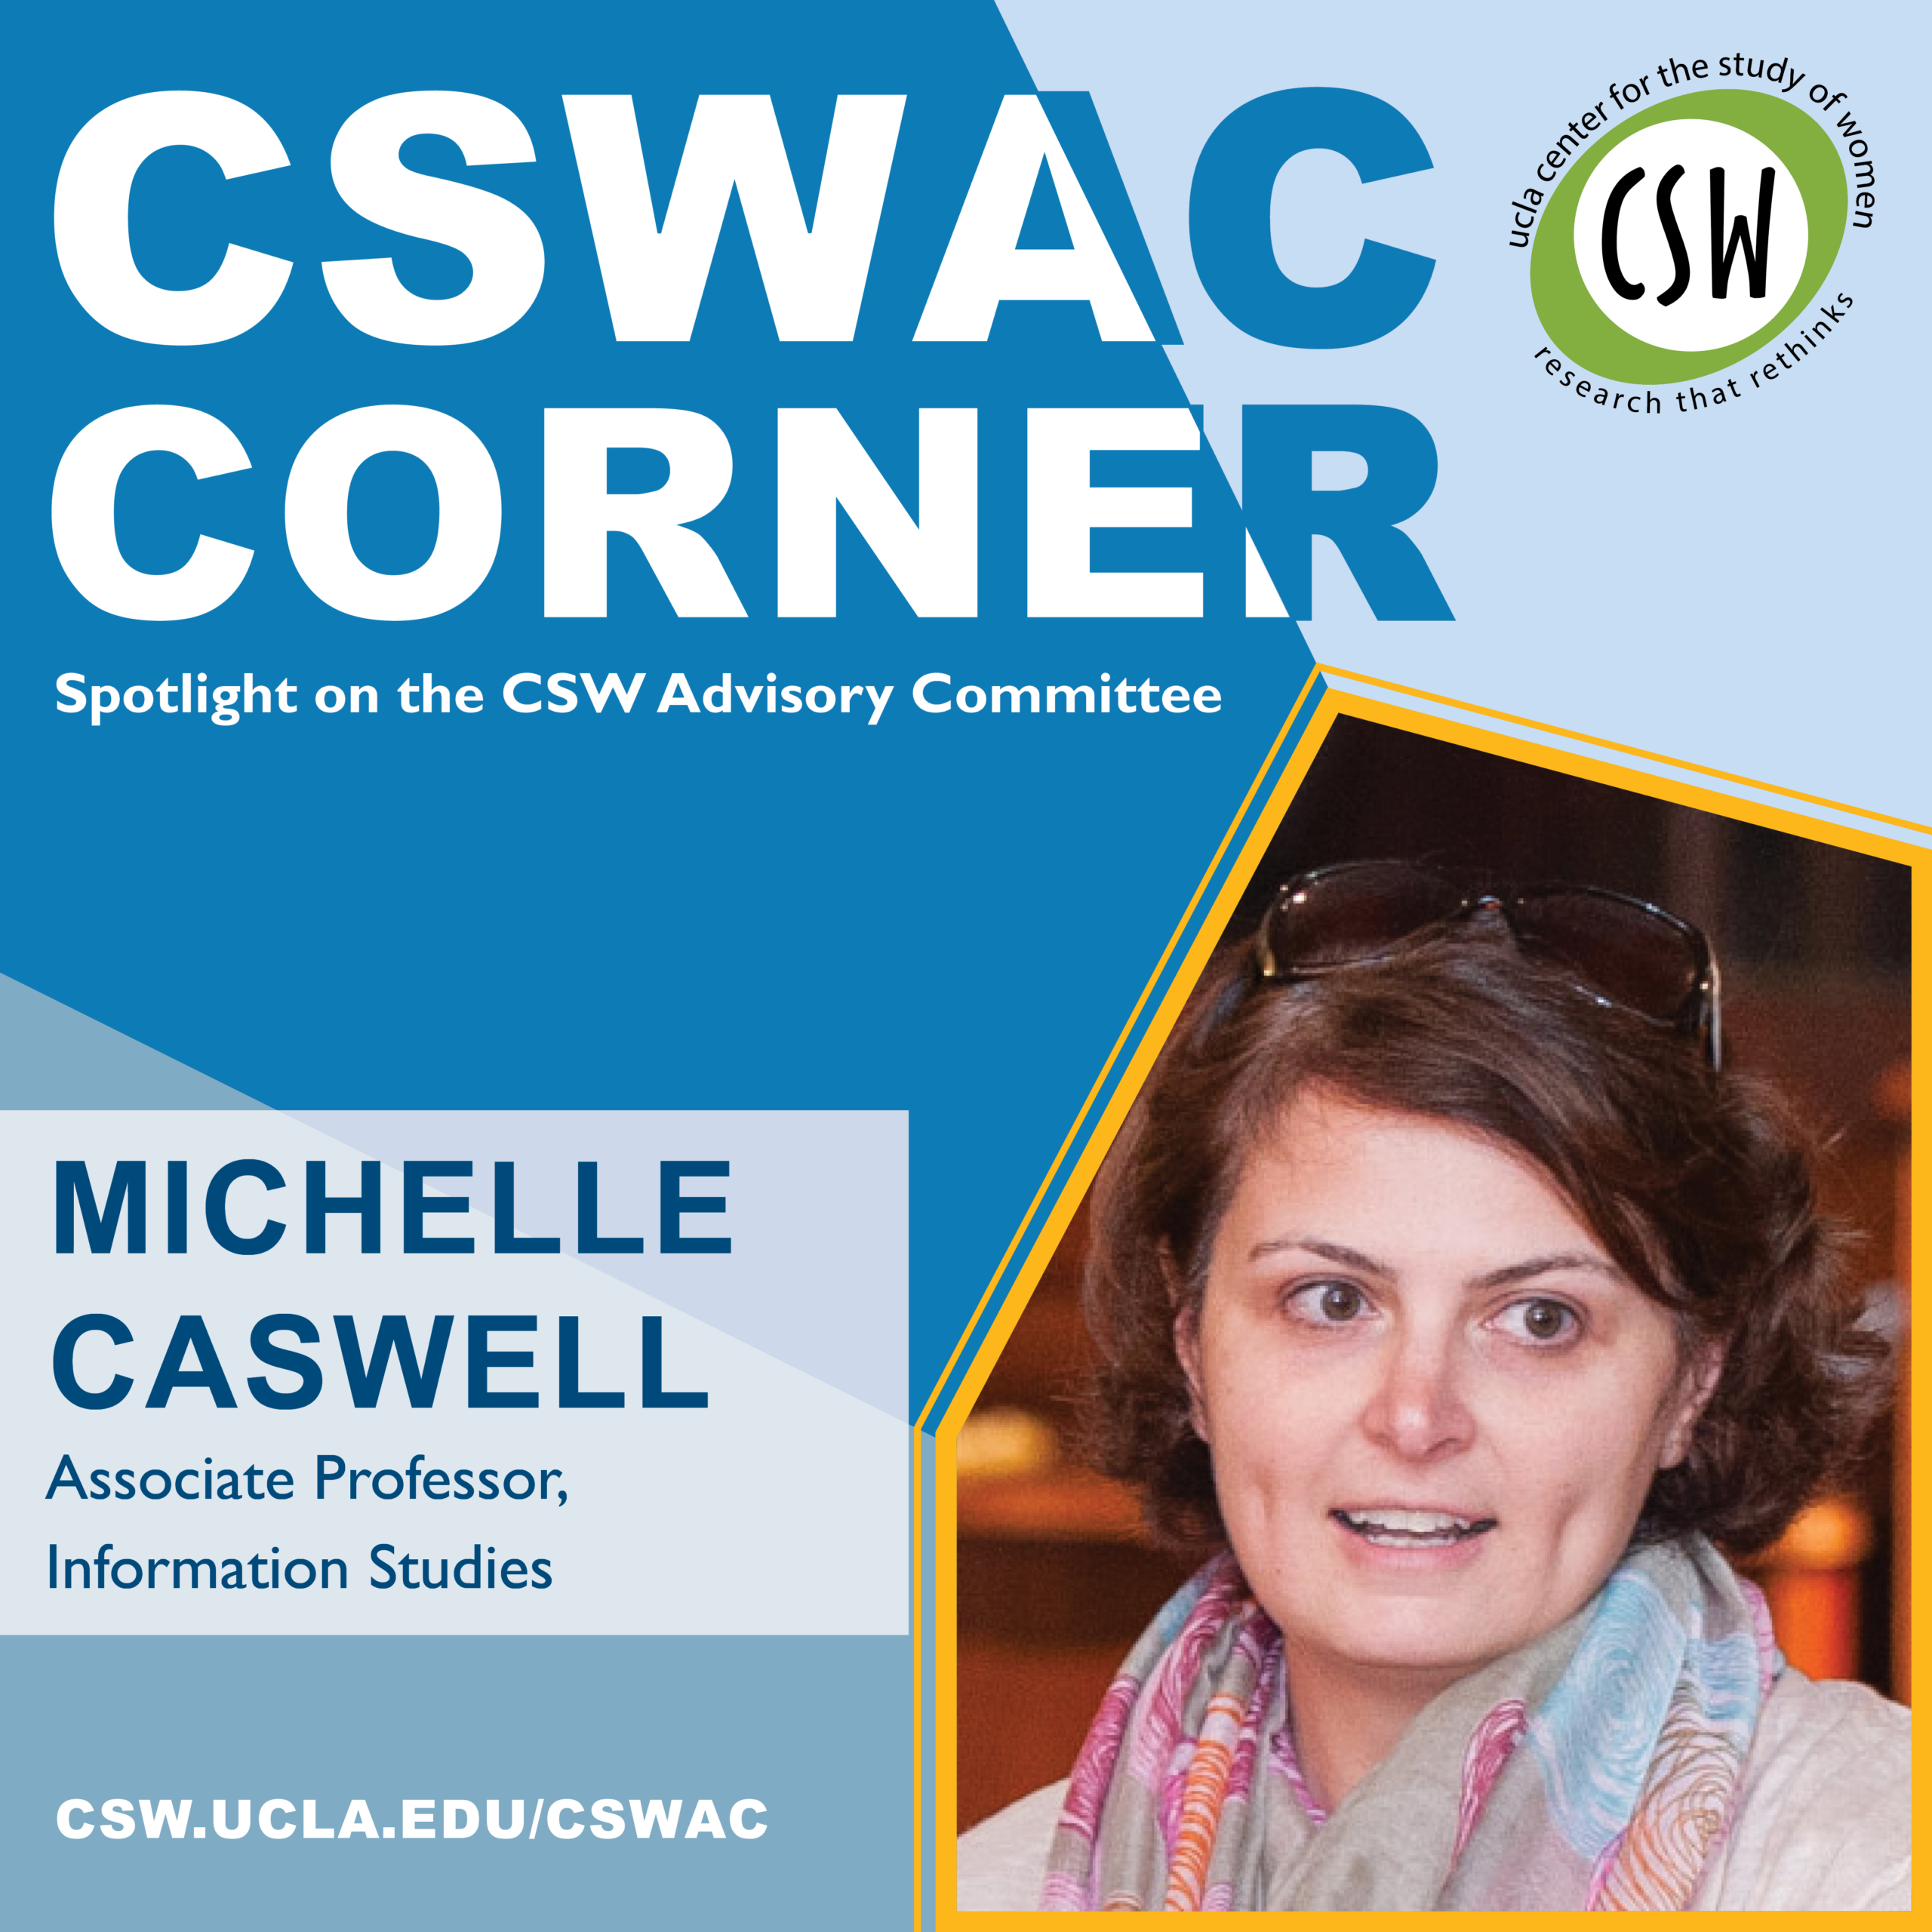 Michelle Caswell